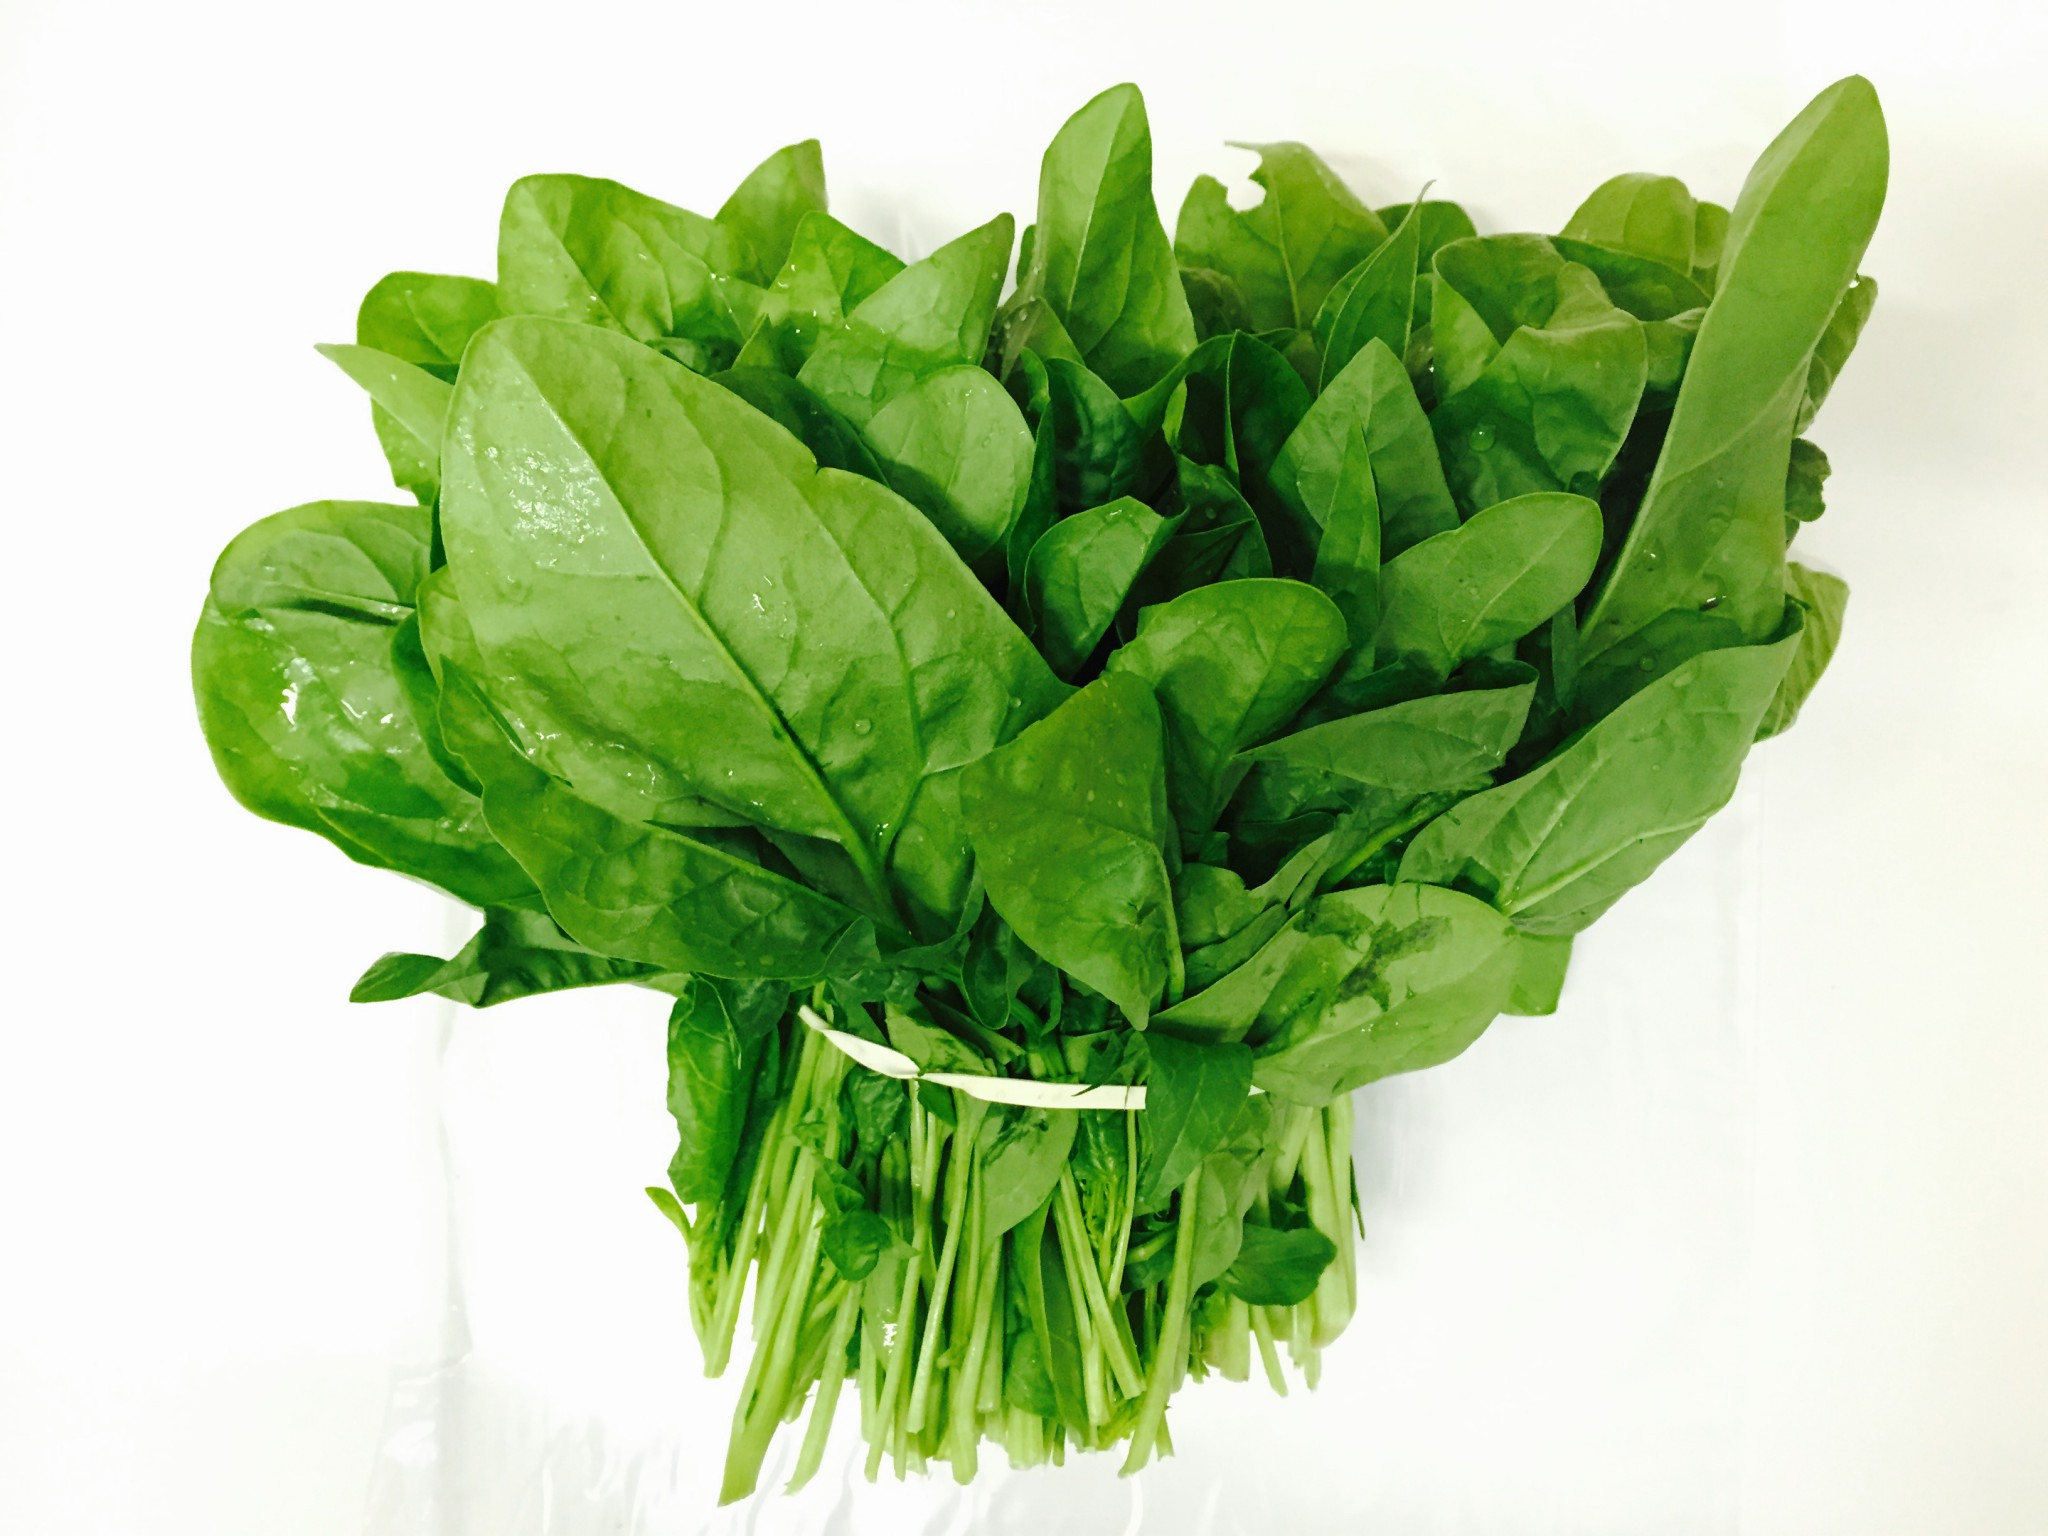 We cam see Spinach Health Benefits,  when we consume it  in our daily diet.